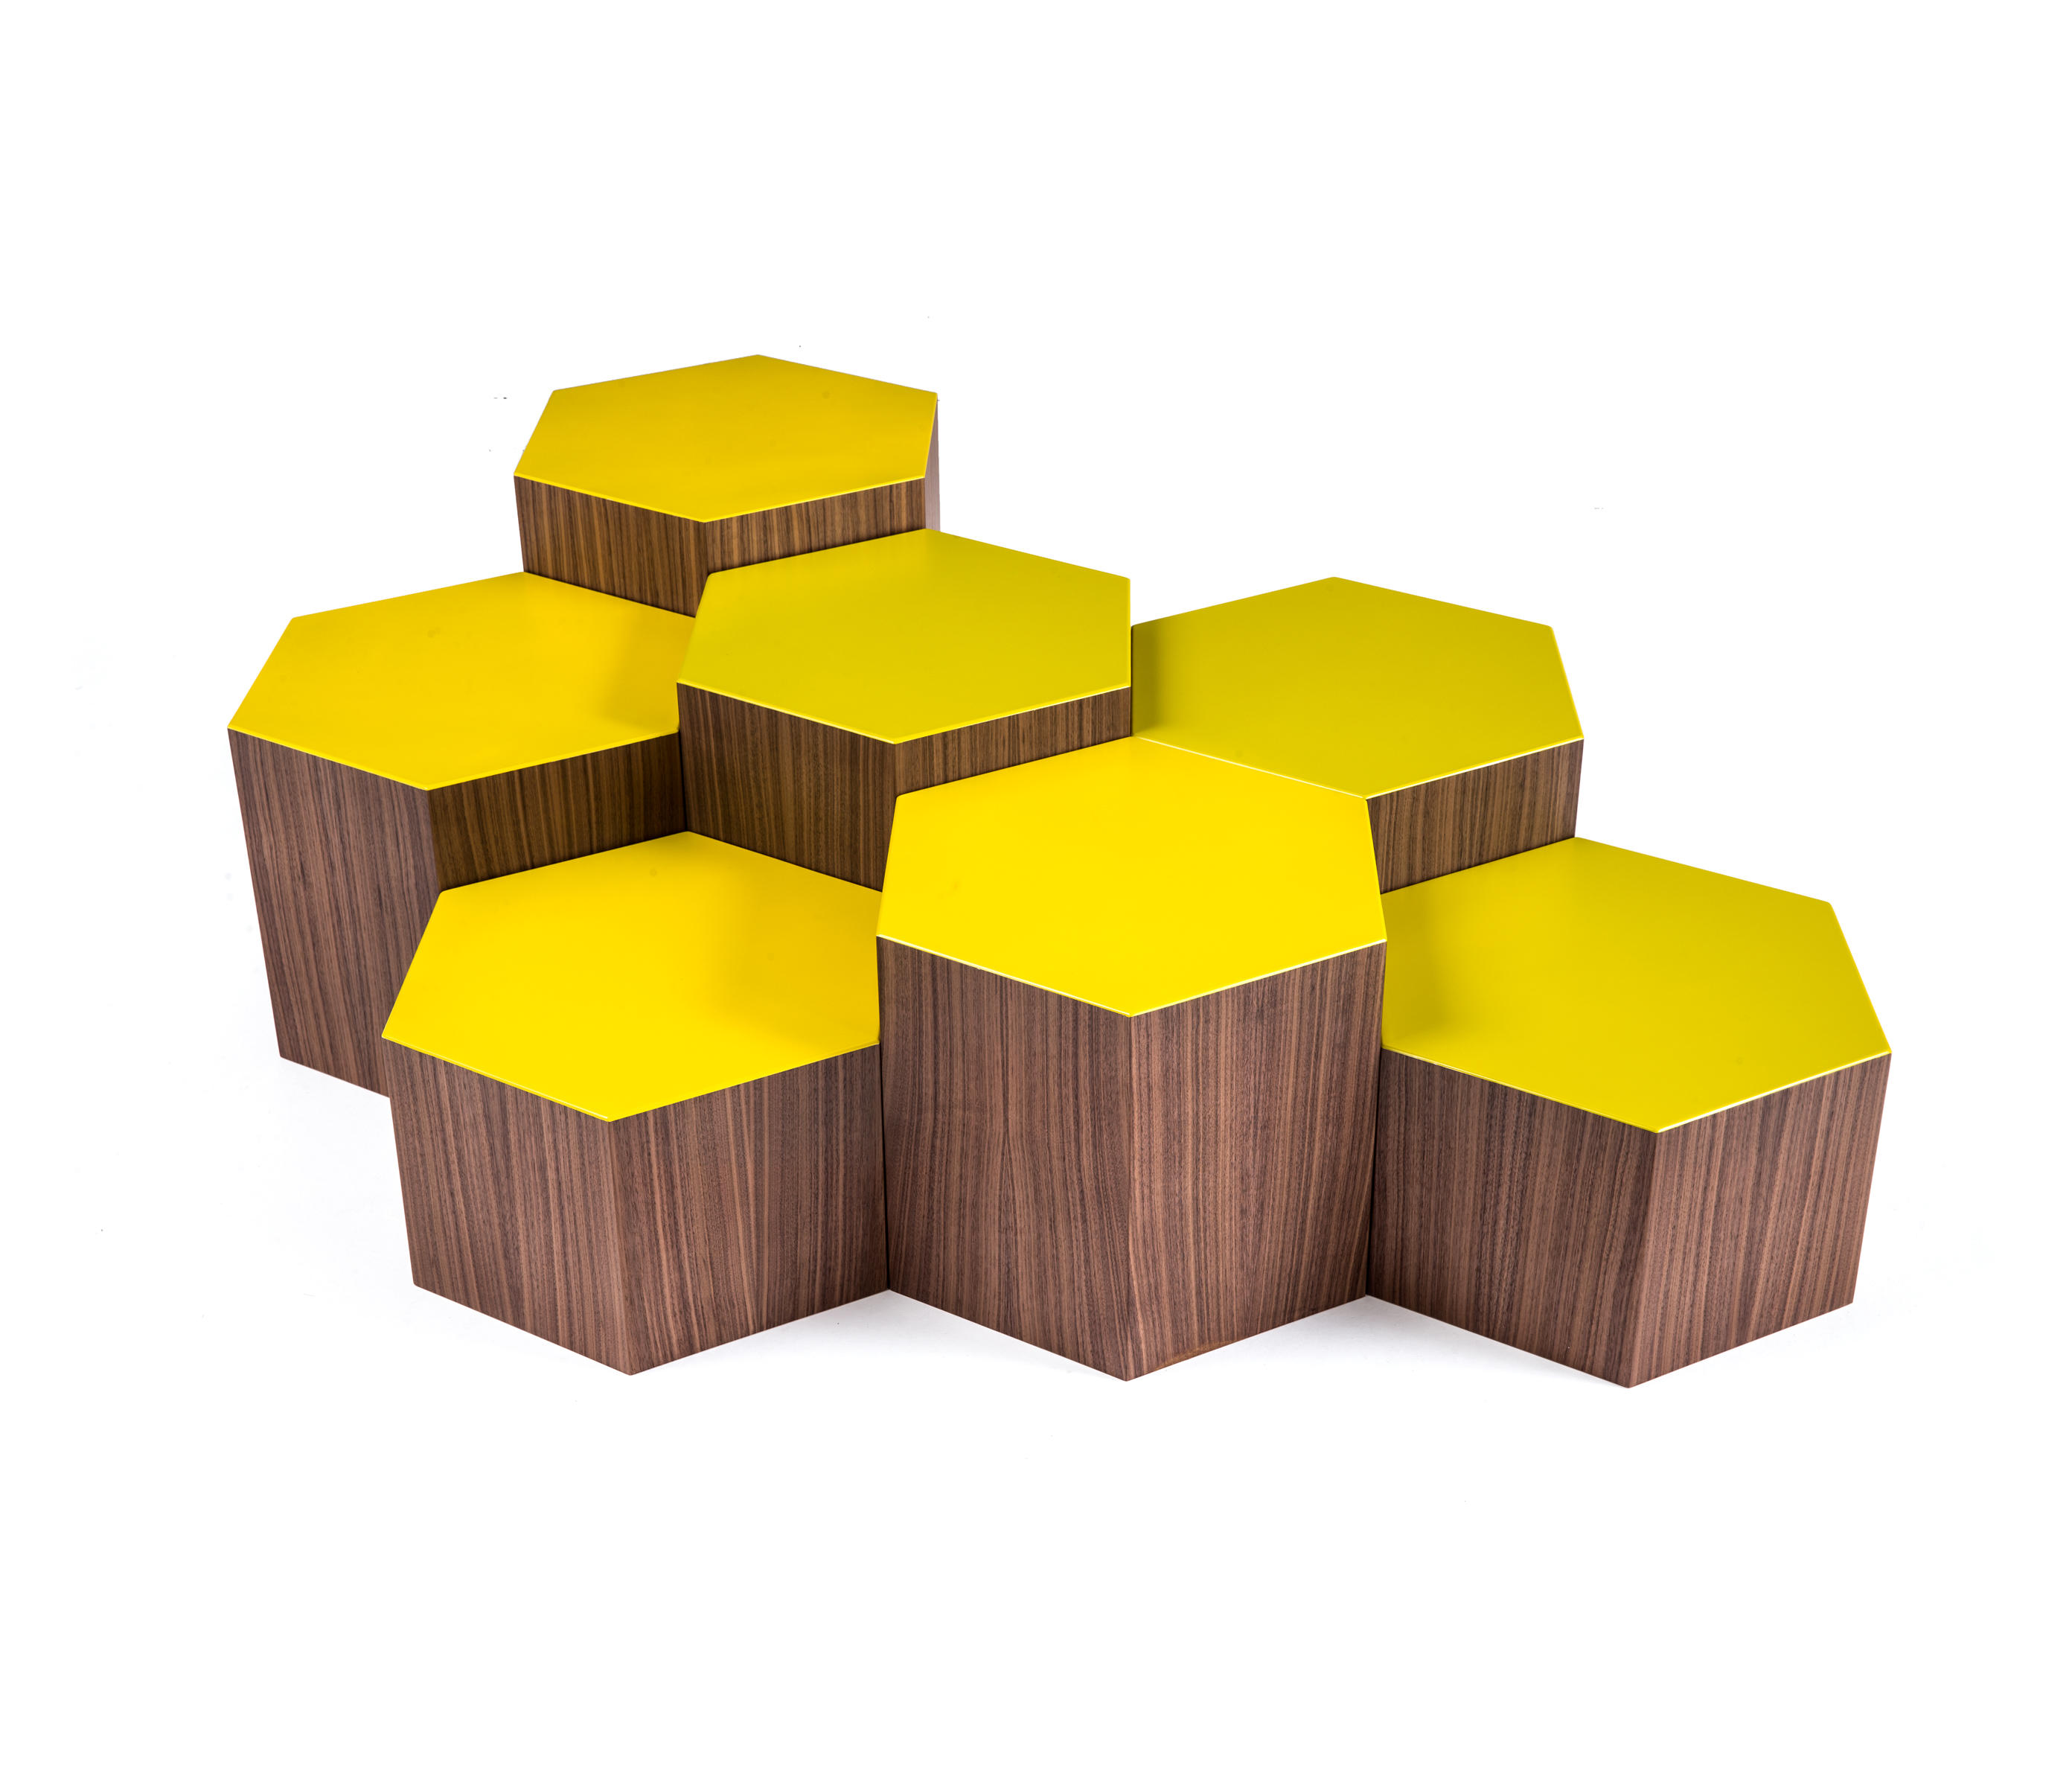 SIX COFFEE TABLE Lounge tables from Bross